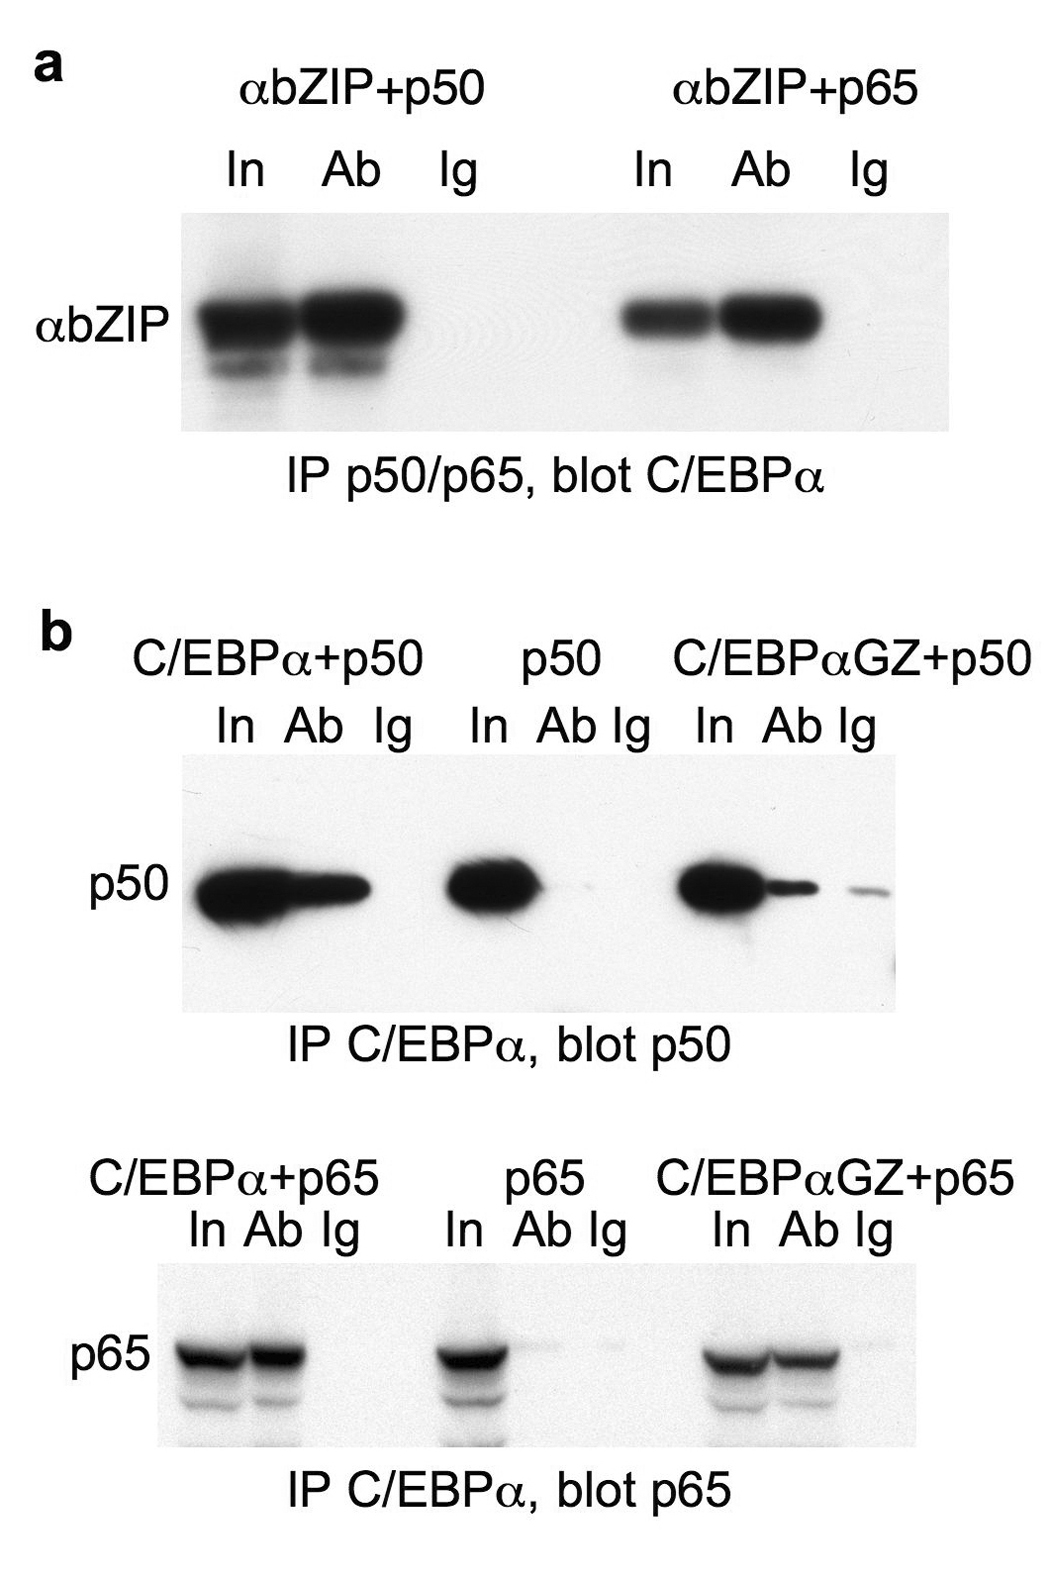 The C/EBPα basic region mediates its interaction with NF-κB p50 or p65 ( a ) 293T cells in 100 mm dishes were cotransfected with 2 µg CMV-C/EBPαbZIP and 2 µg of either CMV-NFκB p50 or CMV-NF-κB p65. Two days later, cells extracts were immunoprecipitated with p50 or p65 rabbit antisera (Ab) or rabbit IgG control (Ig) and immunoblotted with rabbit antiserum raised against the C/EBPα COOH-terminal sequence. ( b ) Extracts from cells transfected with CMV-C/EBPα or CMV-C/EBPαGZ and either CMV-NF-κB p50 or CMV-NF-κB p65 were immunoprecipitated with C/EBPα antiserum or rabbit IgG and immunoblotted with monoclonal p50 or p65 antibodies, as indicated (right and left panels). Extracts from cells transfected with p50 or p65 alone were assayed similarly as additional controls (center panel).